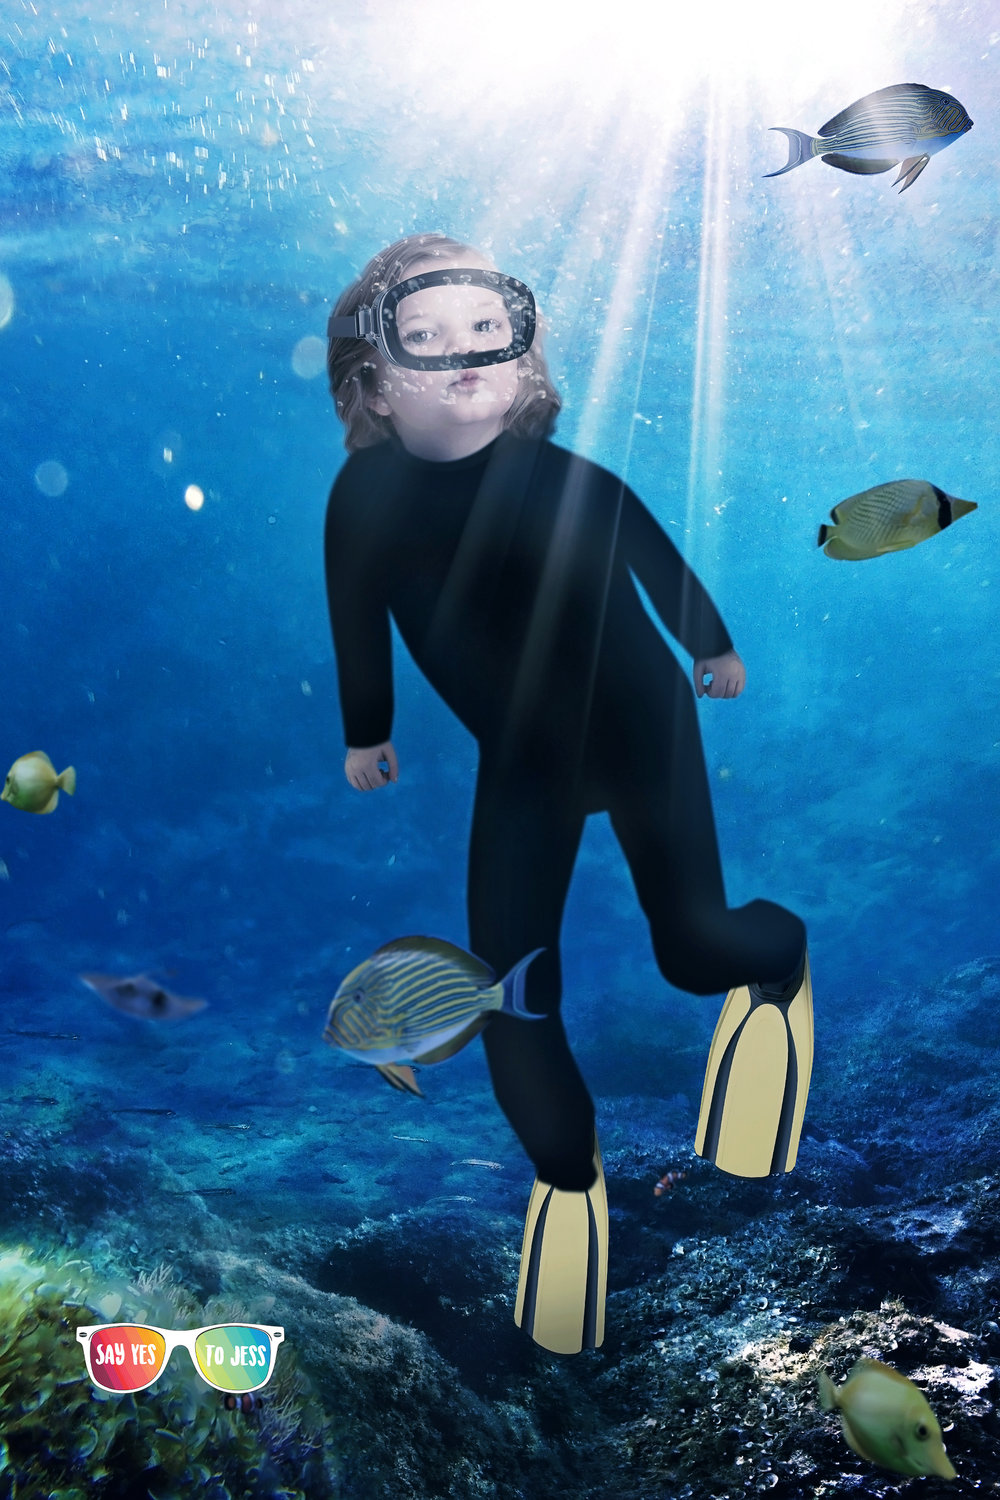 Say yes to Jess photographs Little girl dresses as Sylvia Earle for International Womens Day